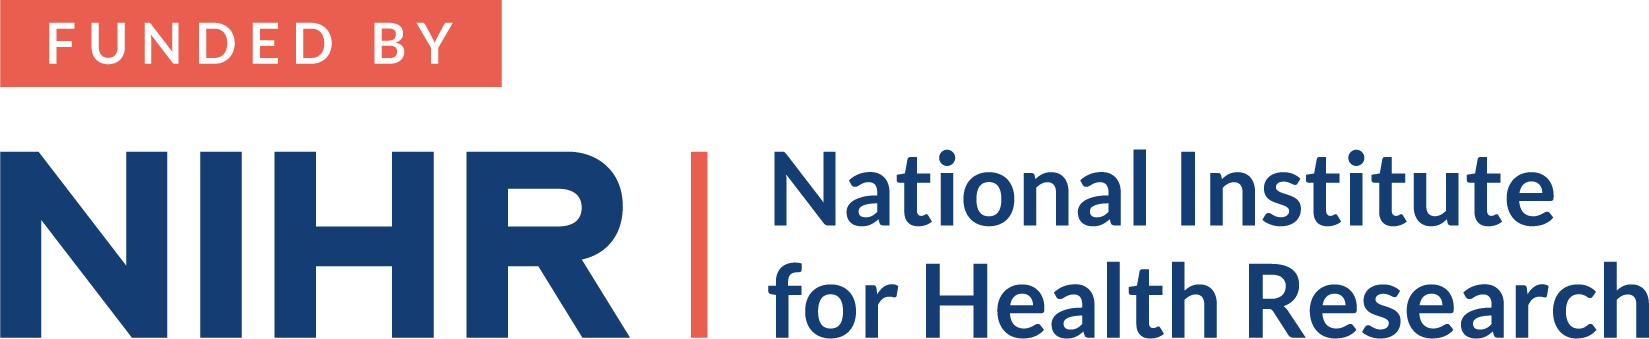 NIHR_Logos_Funded by_COL_CMYK PNG.png